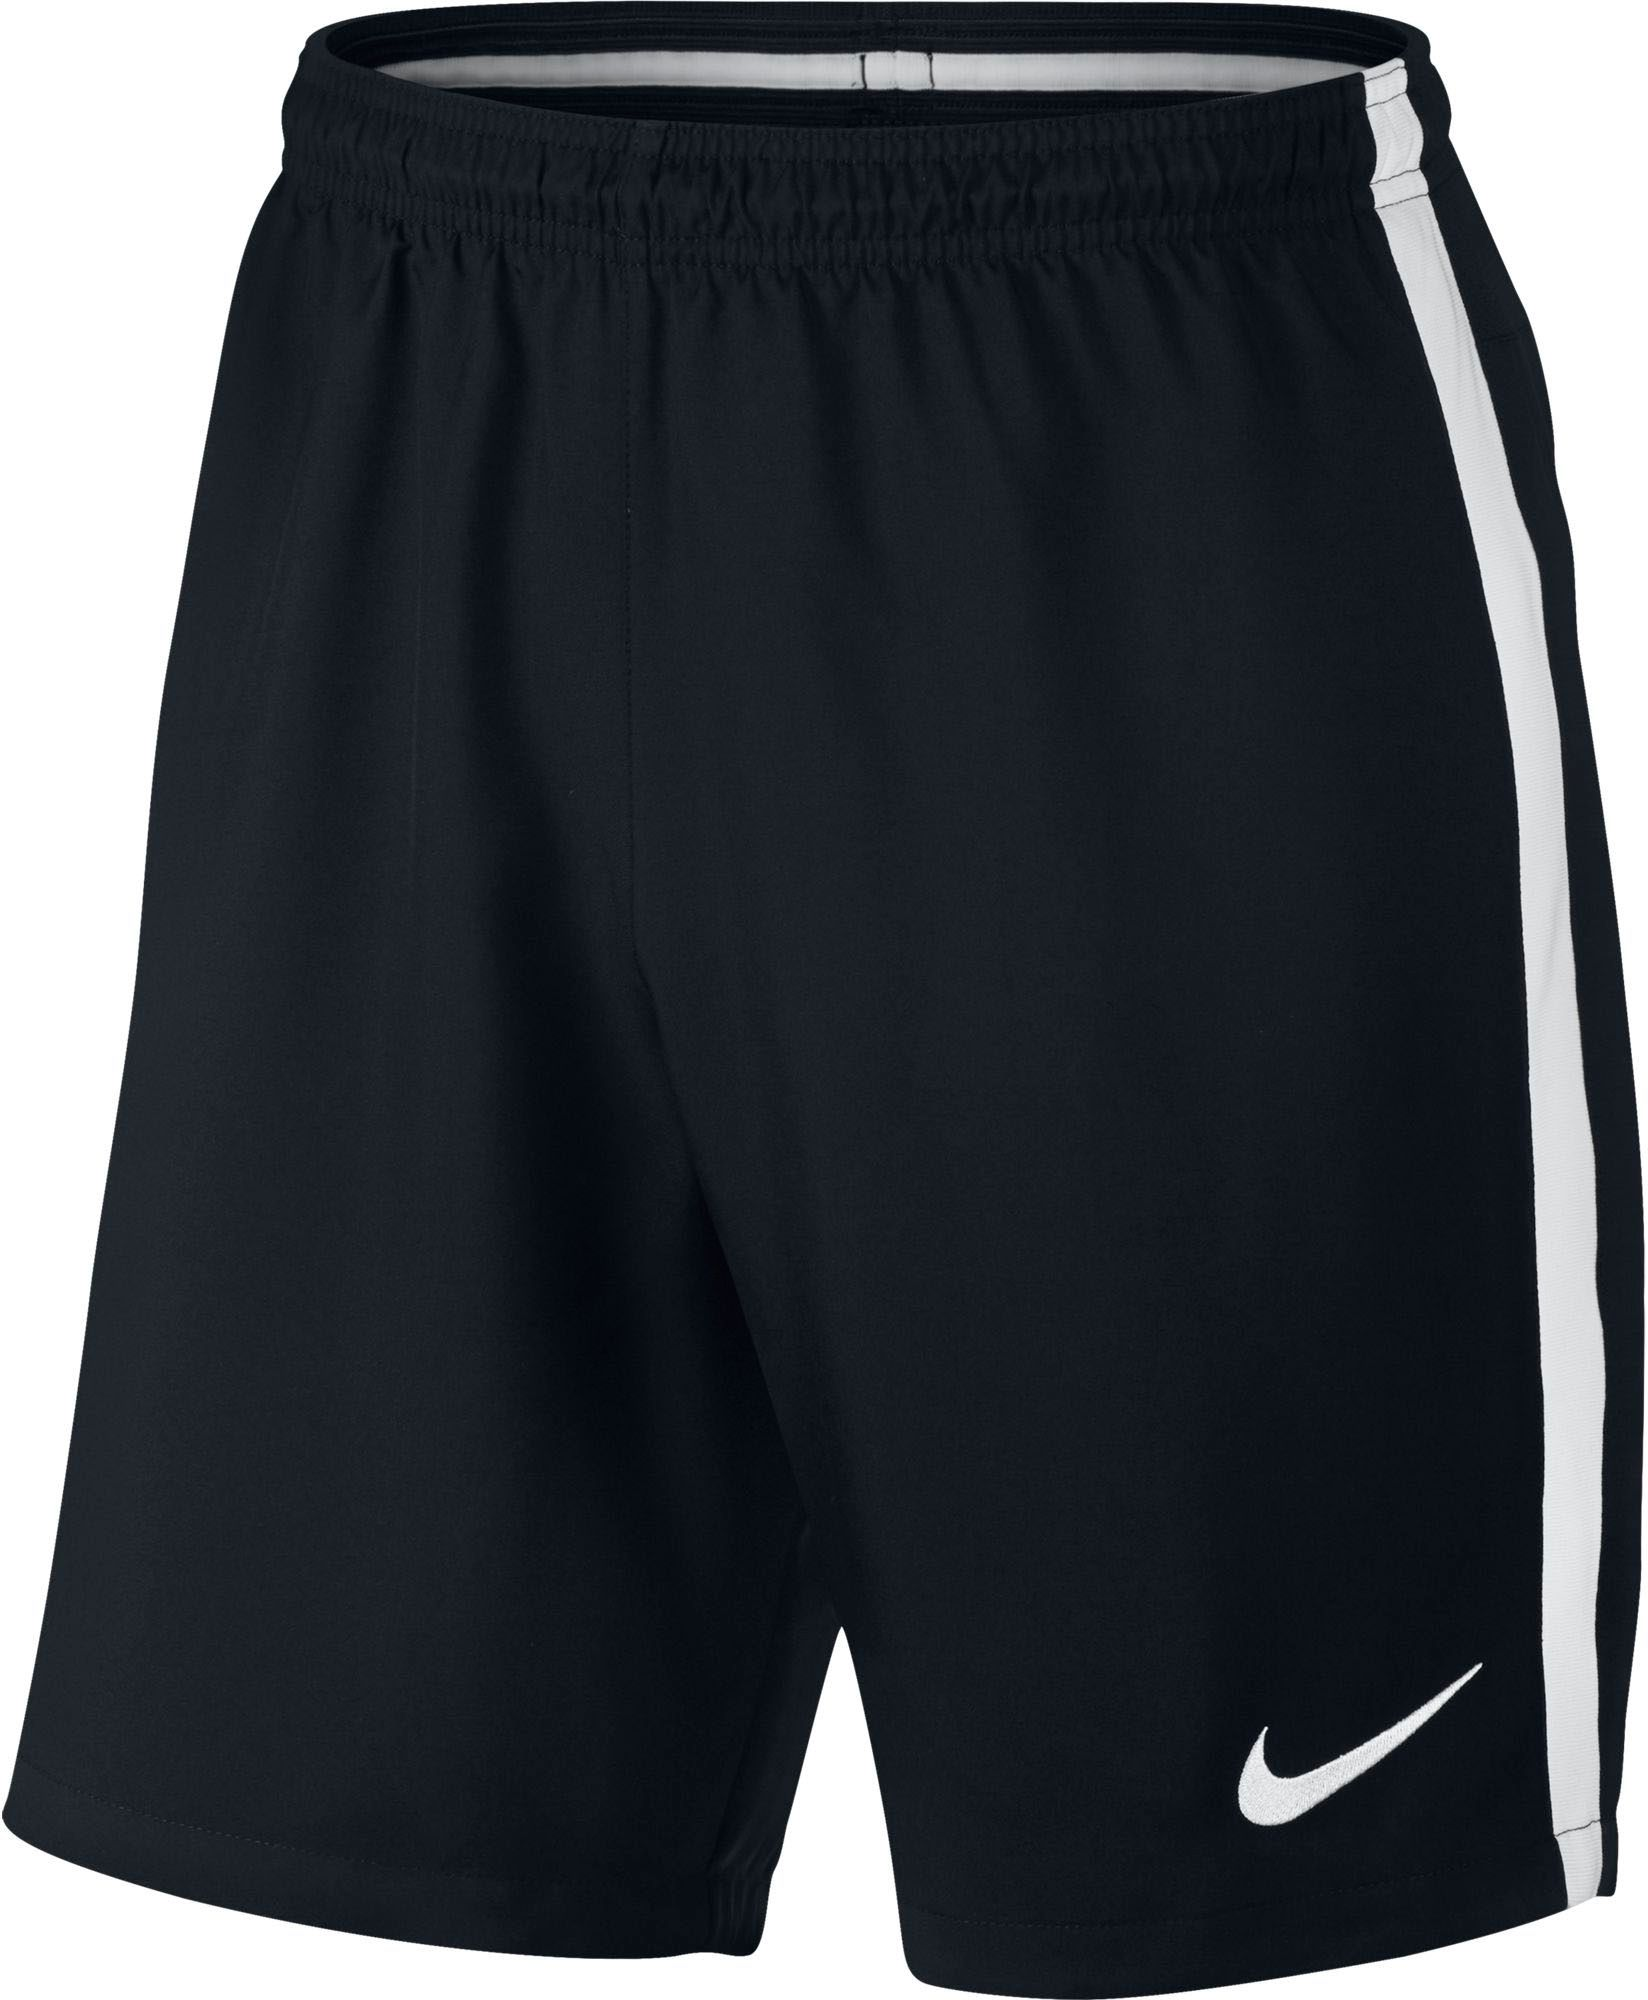 soccer shorts nike menu0027s dry squad dri-fit football shorts XFVHGJE